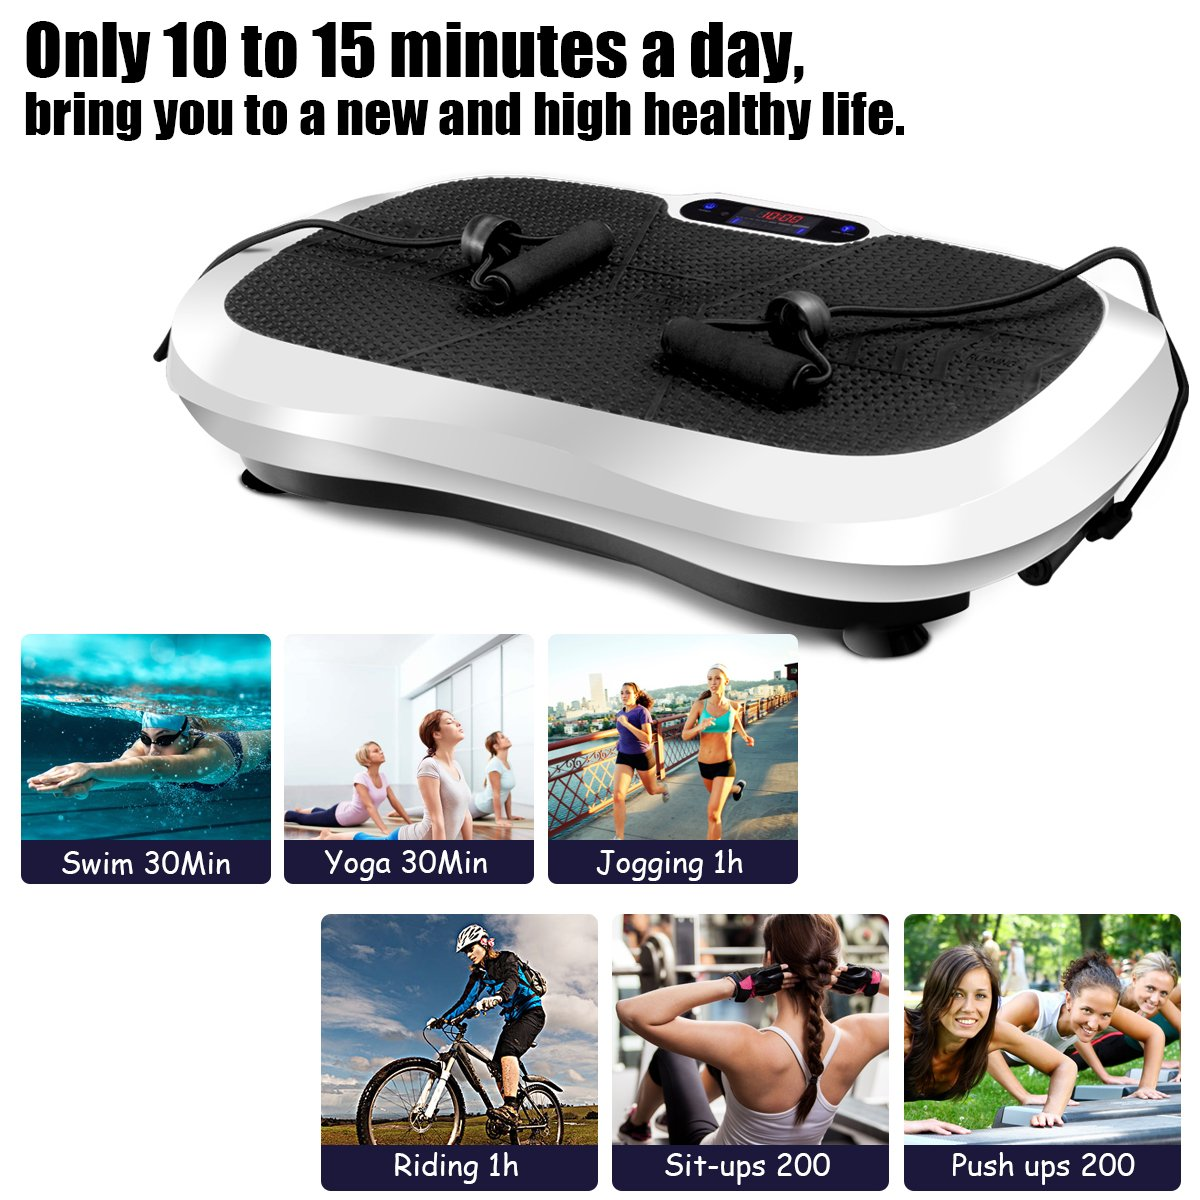 Goplus Fitness Vibration Machine Ultrathin Power Plate Full Body Shape Exercise Machine with Bluetooth Remote Control & Resistance Bands Vibration Workout Trainer (White) by Goplus (Image #6)